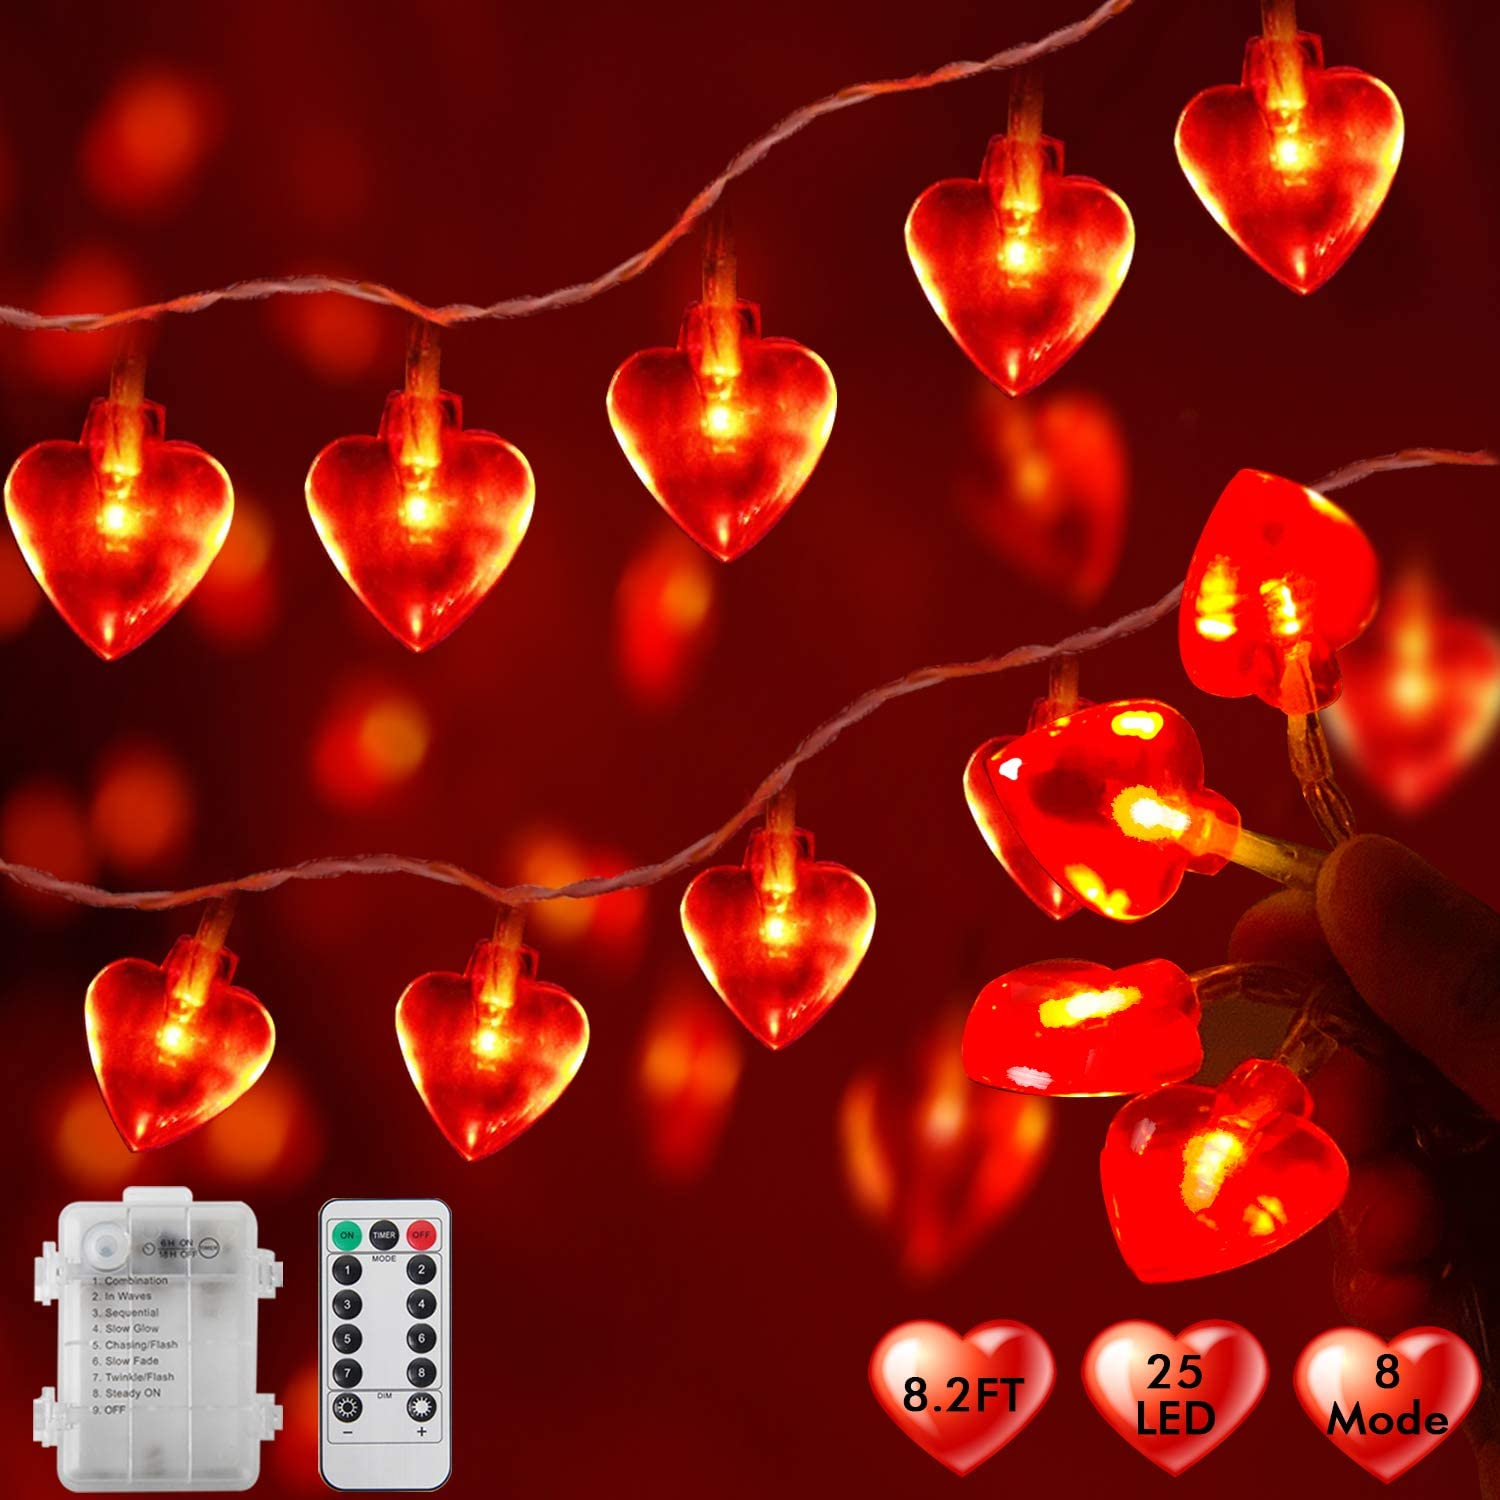 AKIT Heart Shaped Fairy Lights Battery Operated, 9FT 25 LED Lights for Bedroom Room Decor, Indoor Outdoor String Lights with Remote & Timer, Valentines Day Gifts for Him Her Wedding